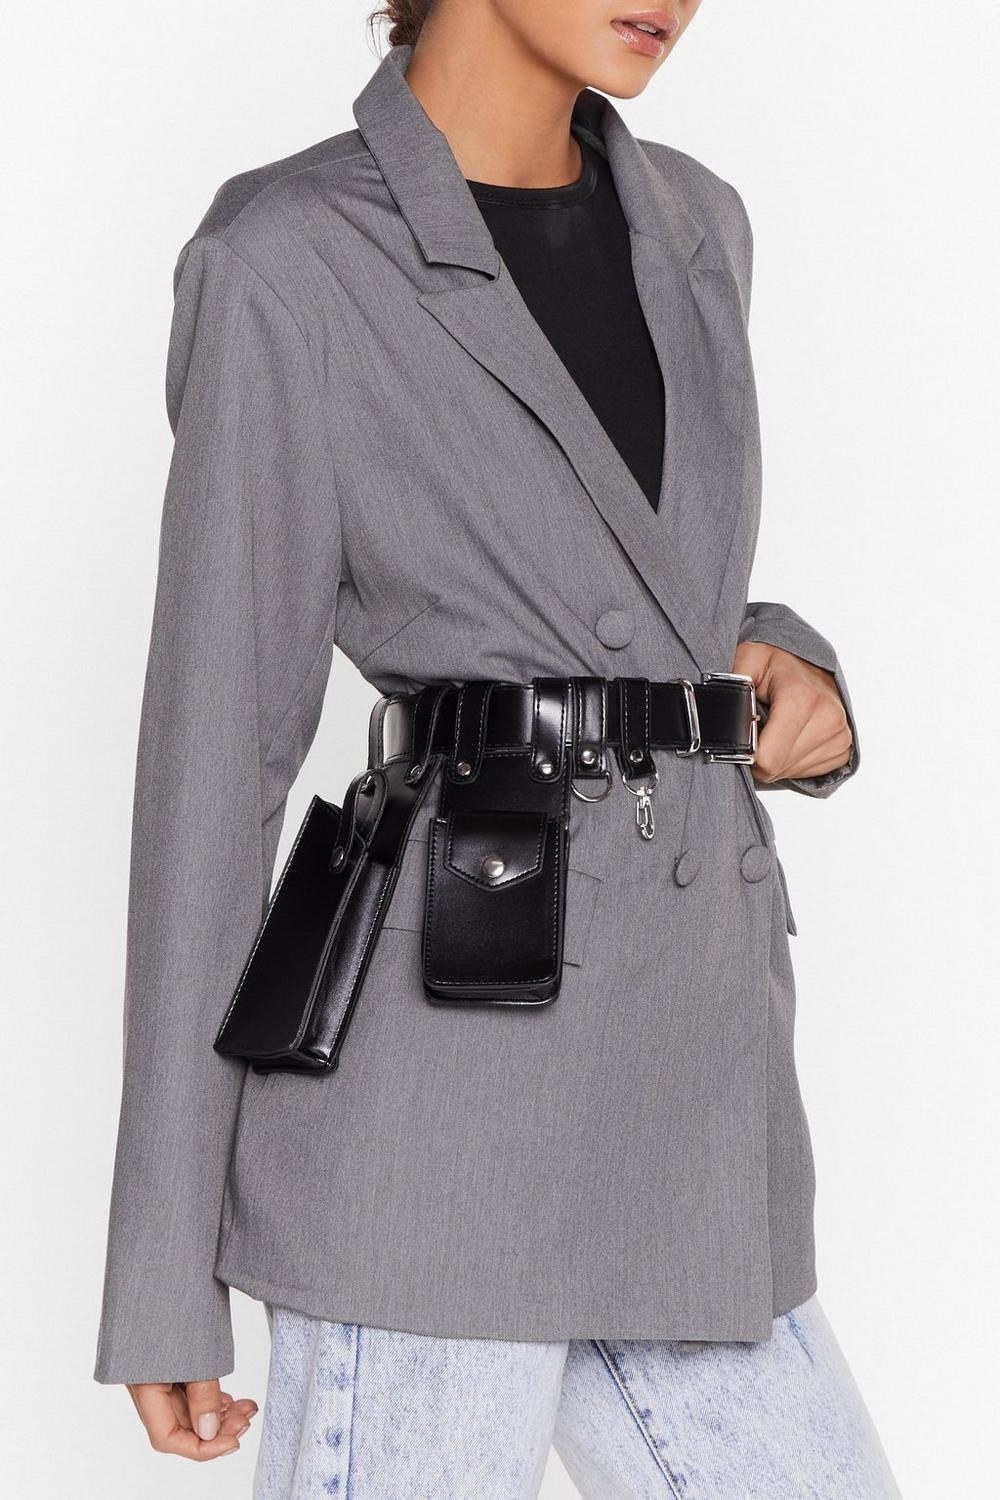 A person wearing the stylish utility belt around their waist over an oversized suit jacket